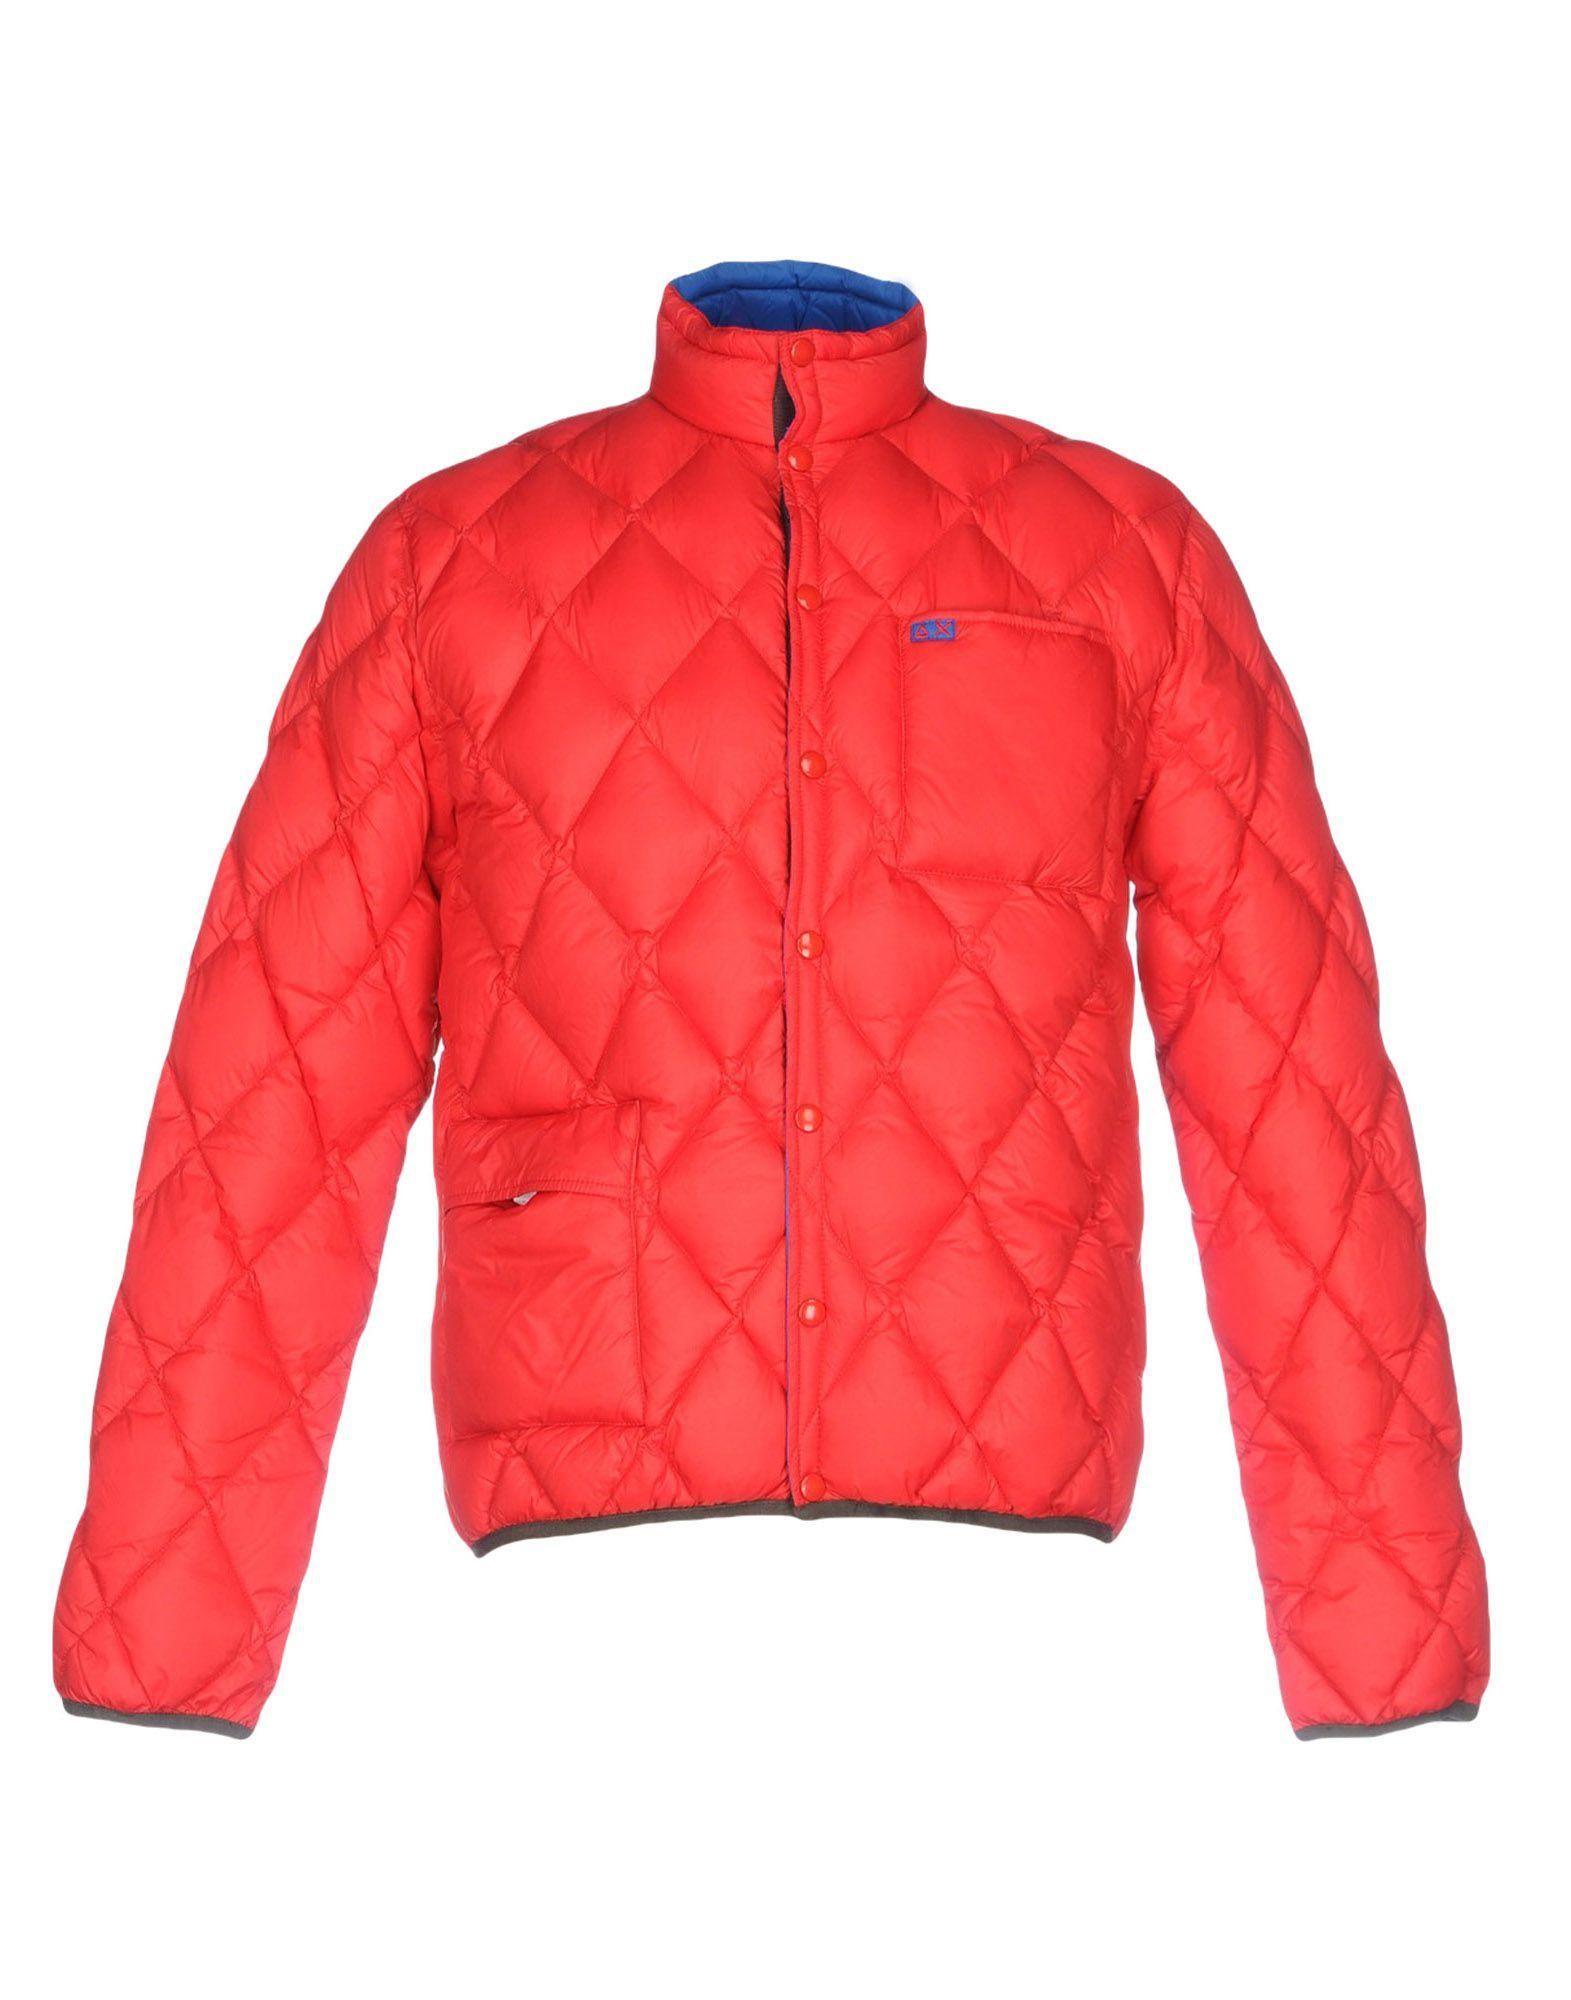 Sun 68 Down Jacket In Red